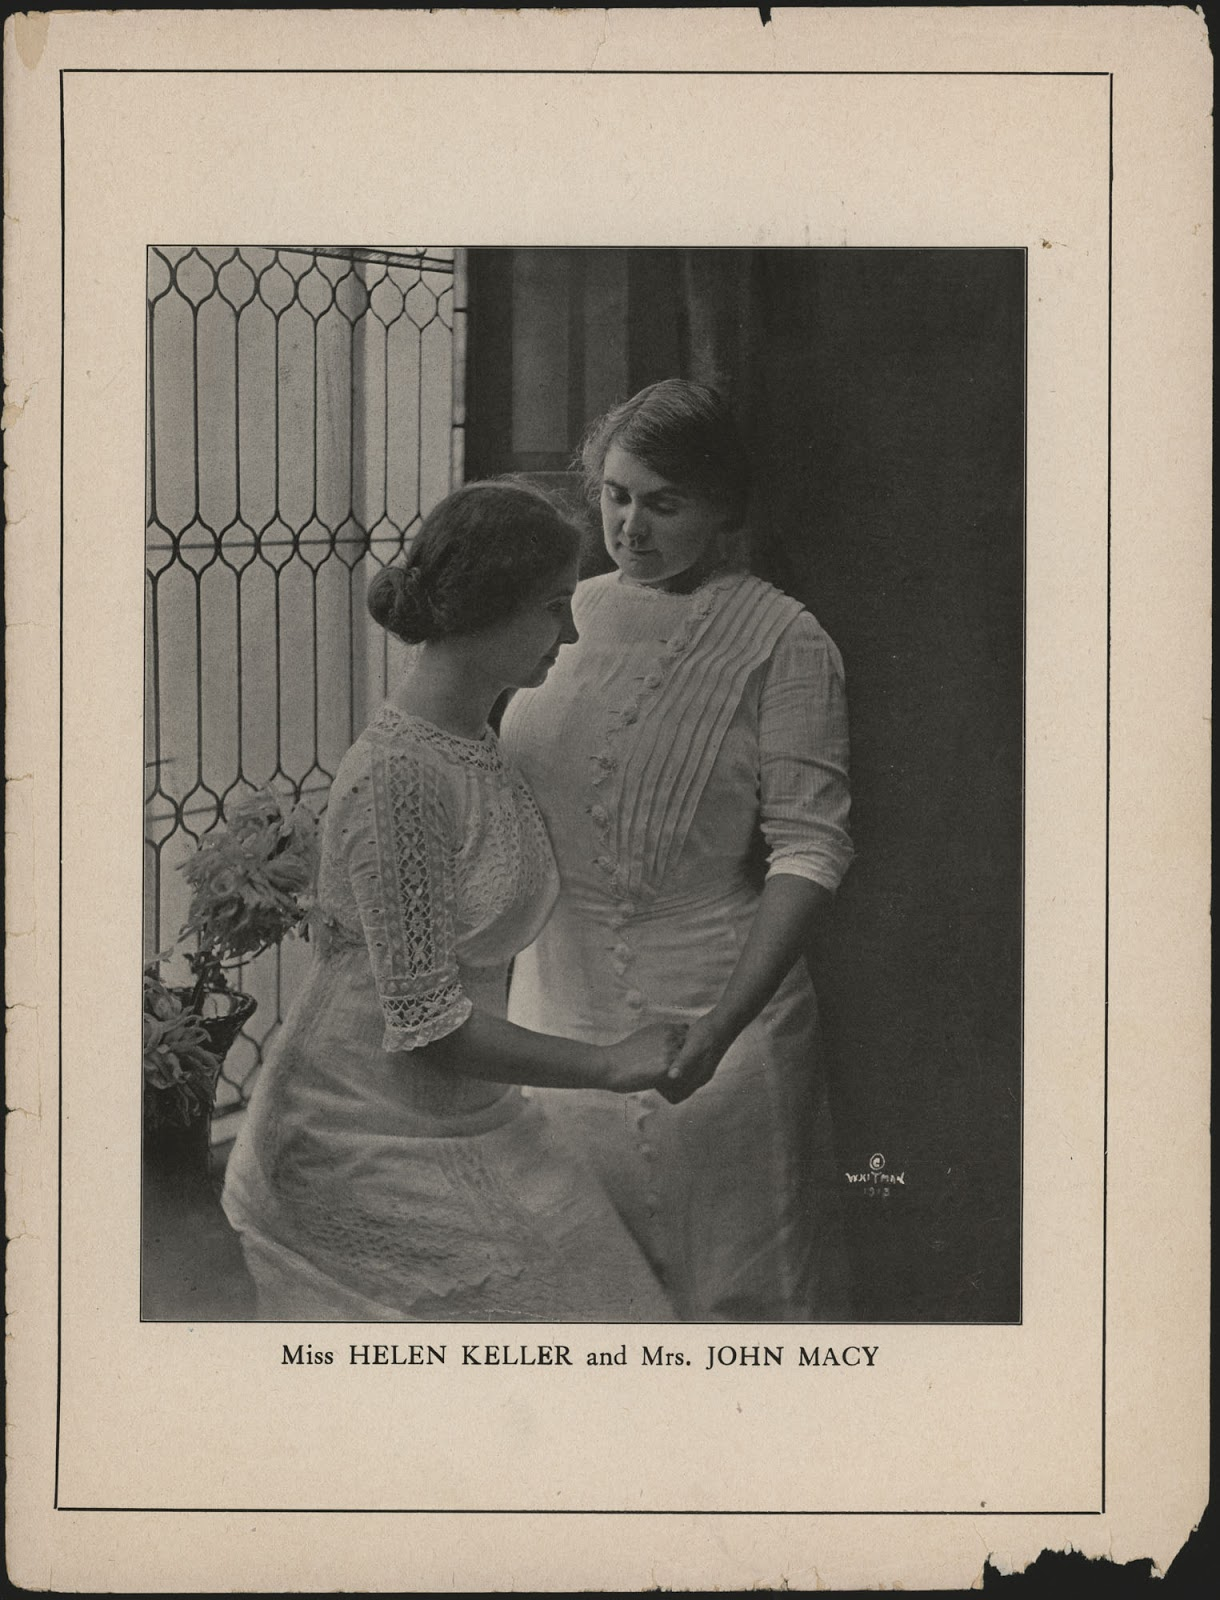 helen keller and the dunn triplets Deaf-blind american author, activist, and lecturer helen keller in 1904 deafblindness is the condition of little or no useful sight and little or no useful hearing.